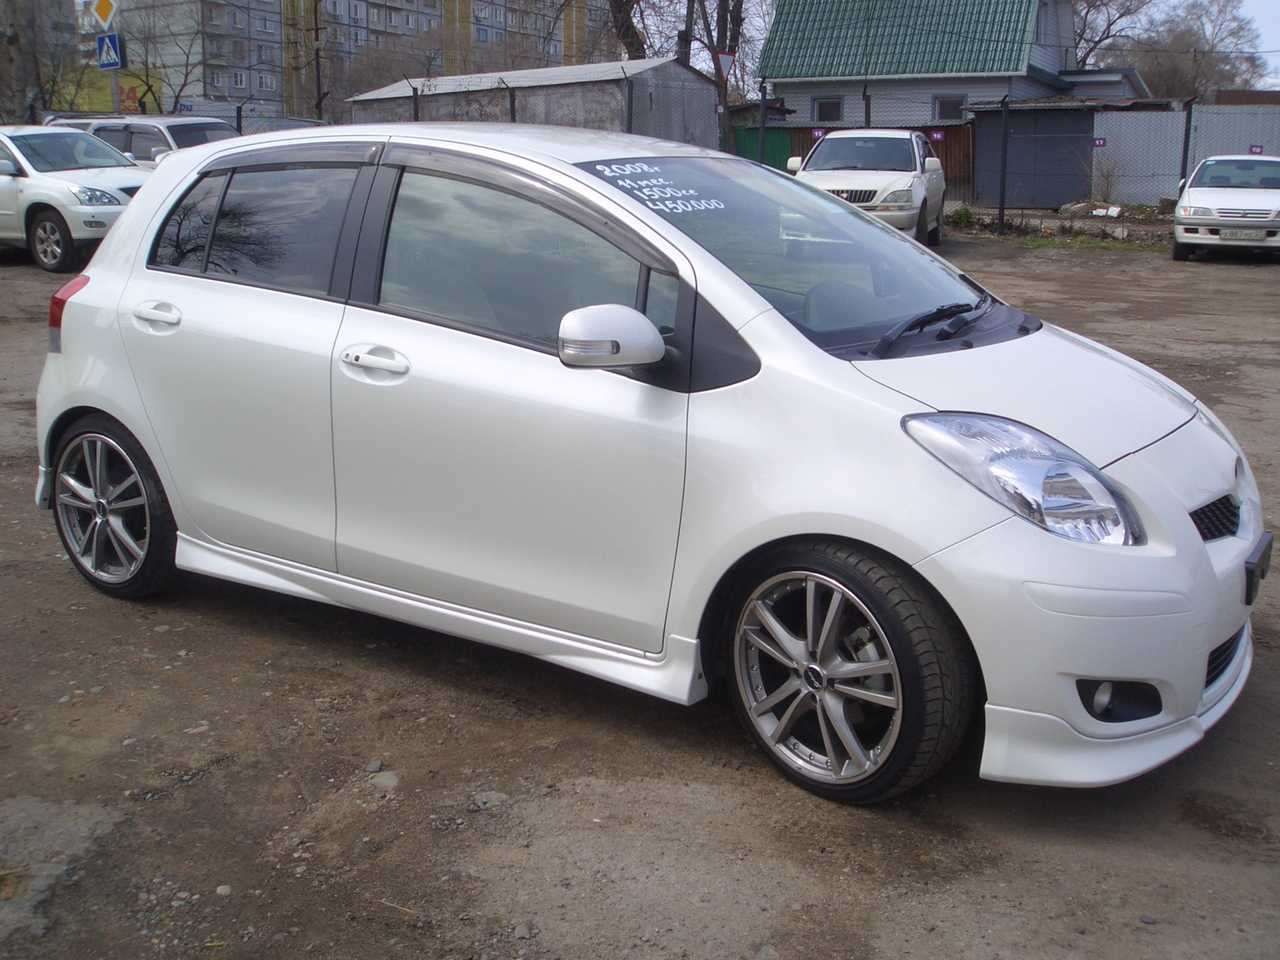 2008 Toyota Yaris Sedan Fuse Box Wiring Diagram Will Be A Thing 2000 Camry Vitz Wallpapers 1 5l Gasoline Ff Cvt For Sale